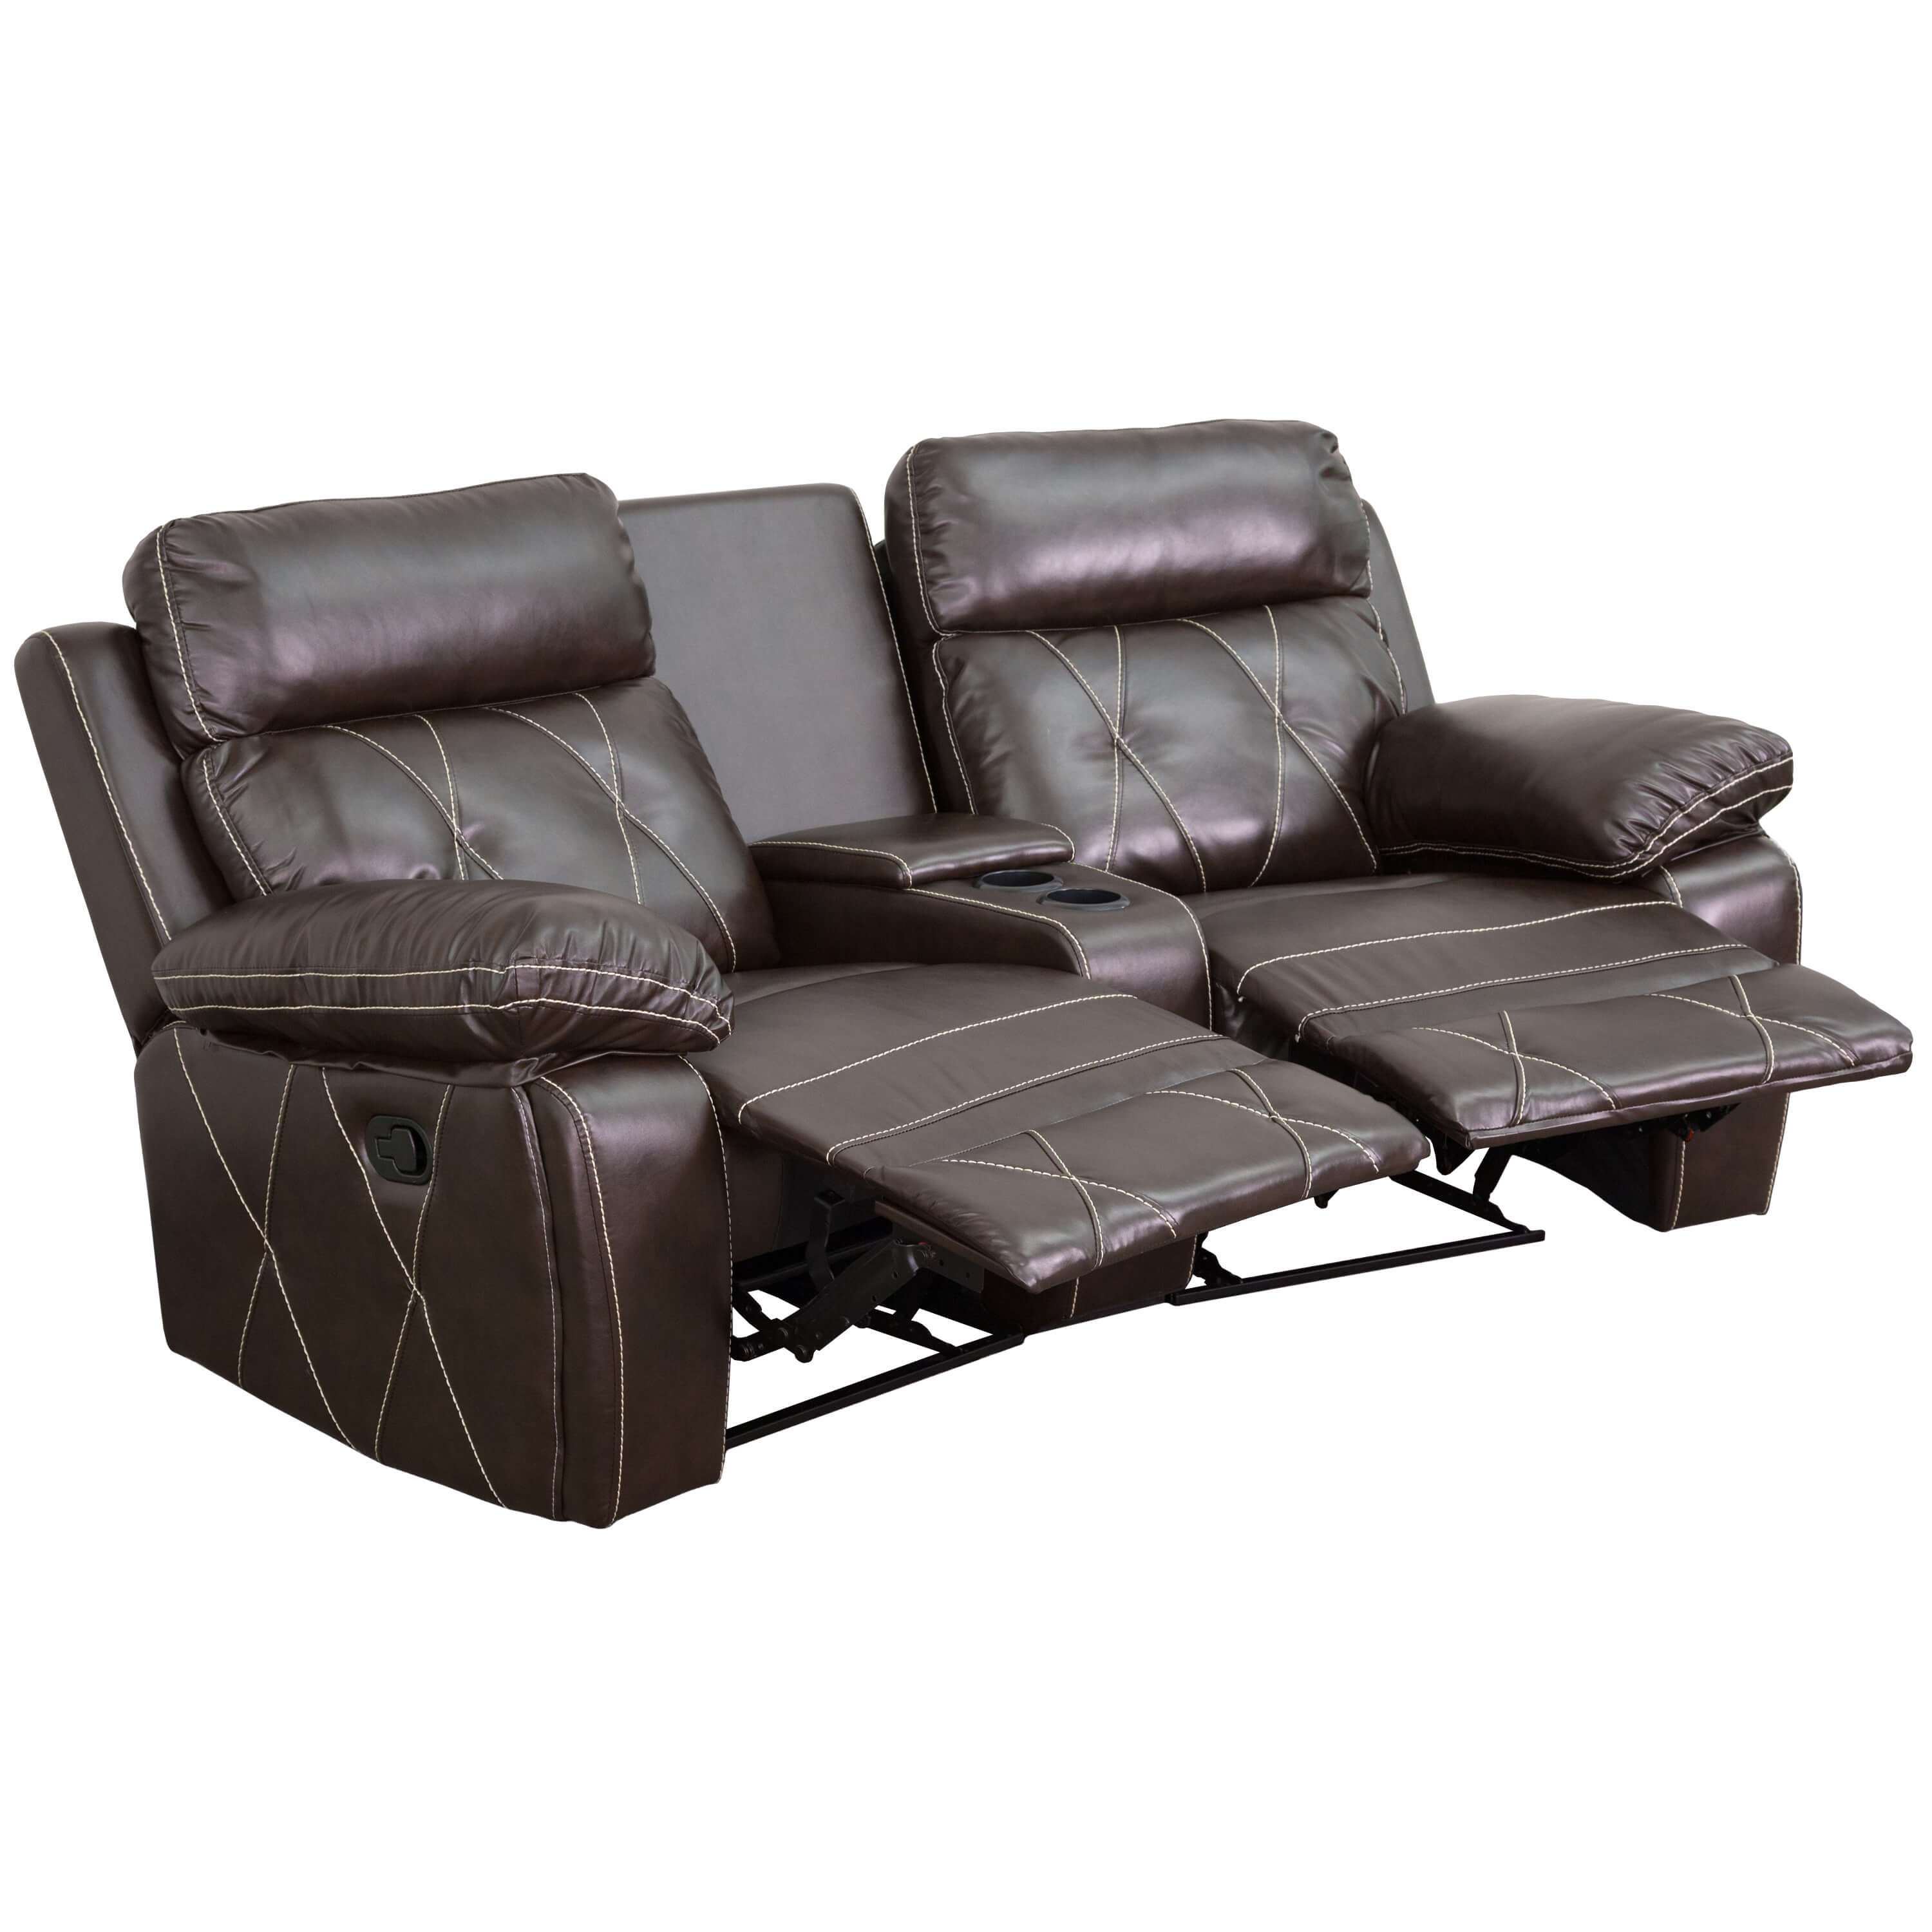 home-theatre-seating-media-seating.jpg